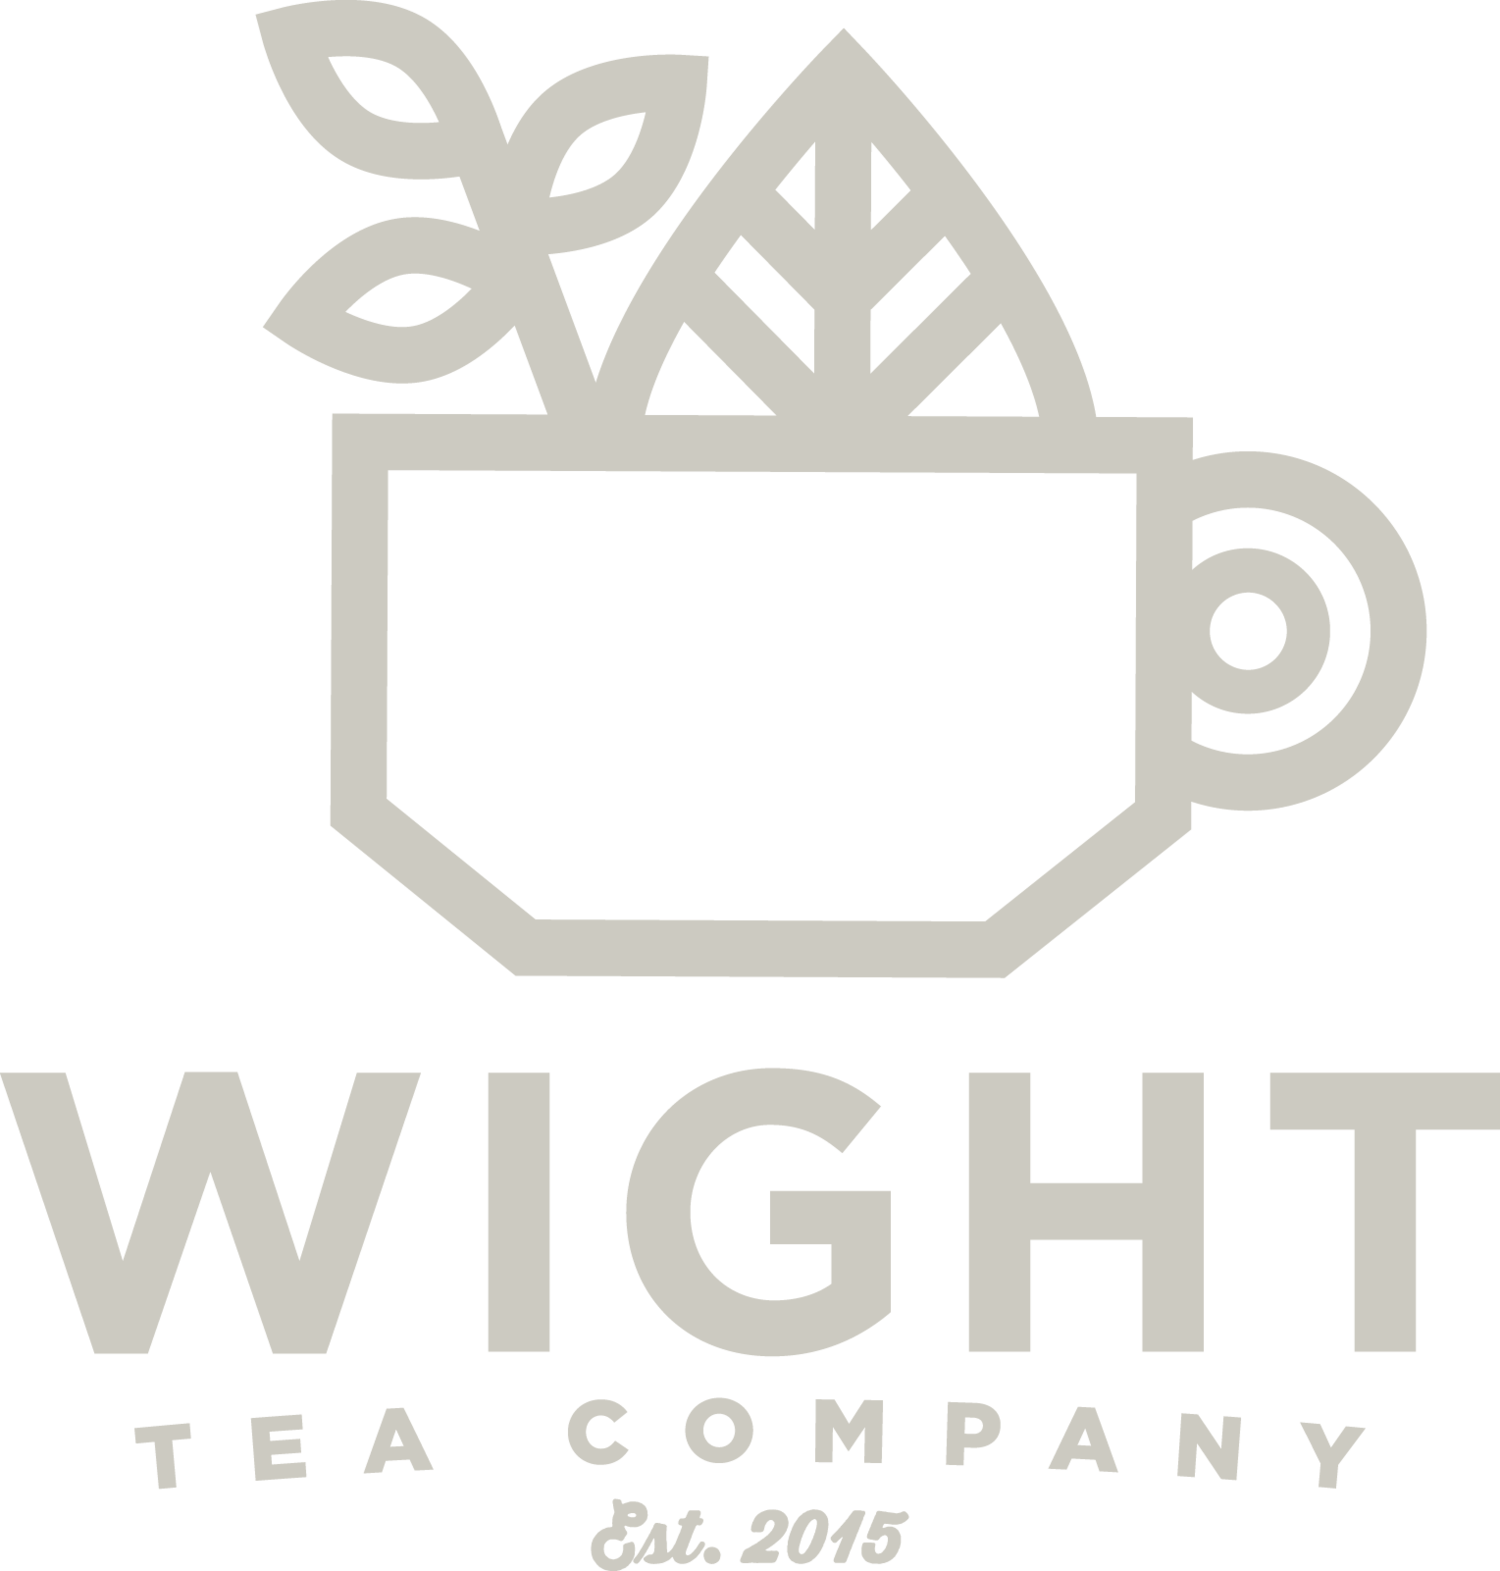 Wight Tea Co